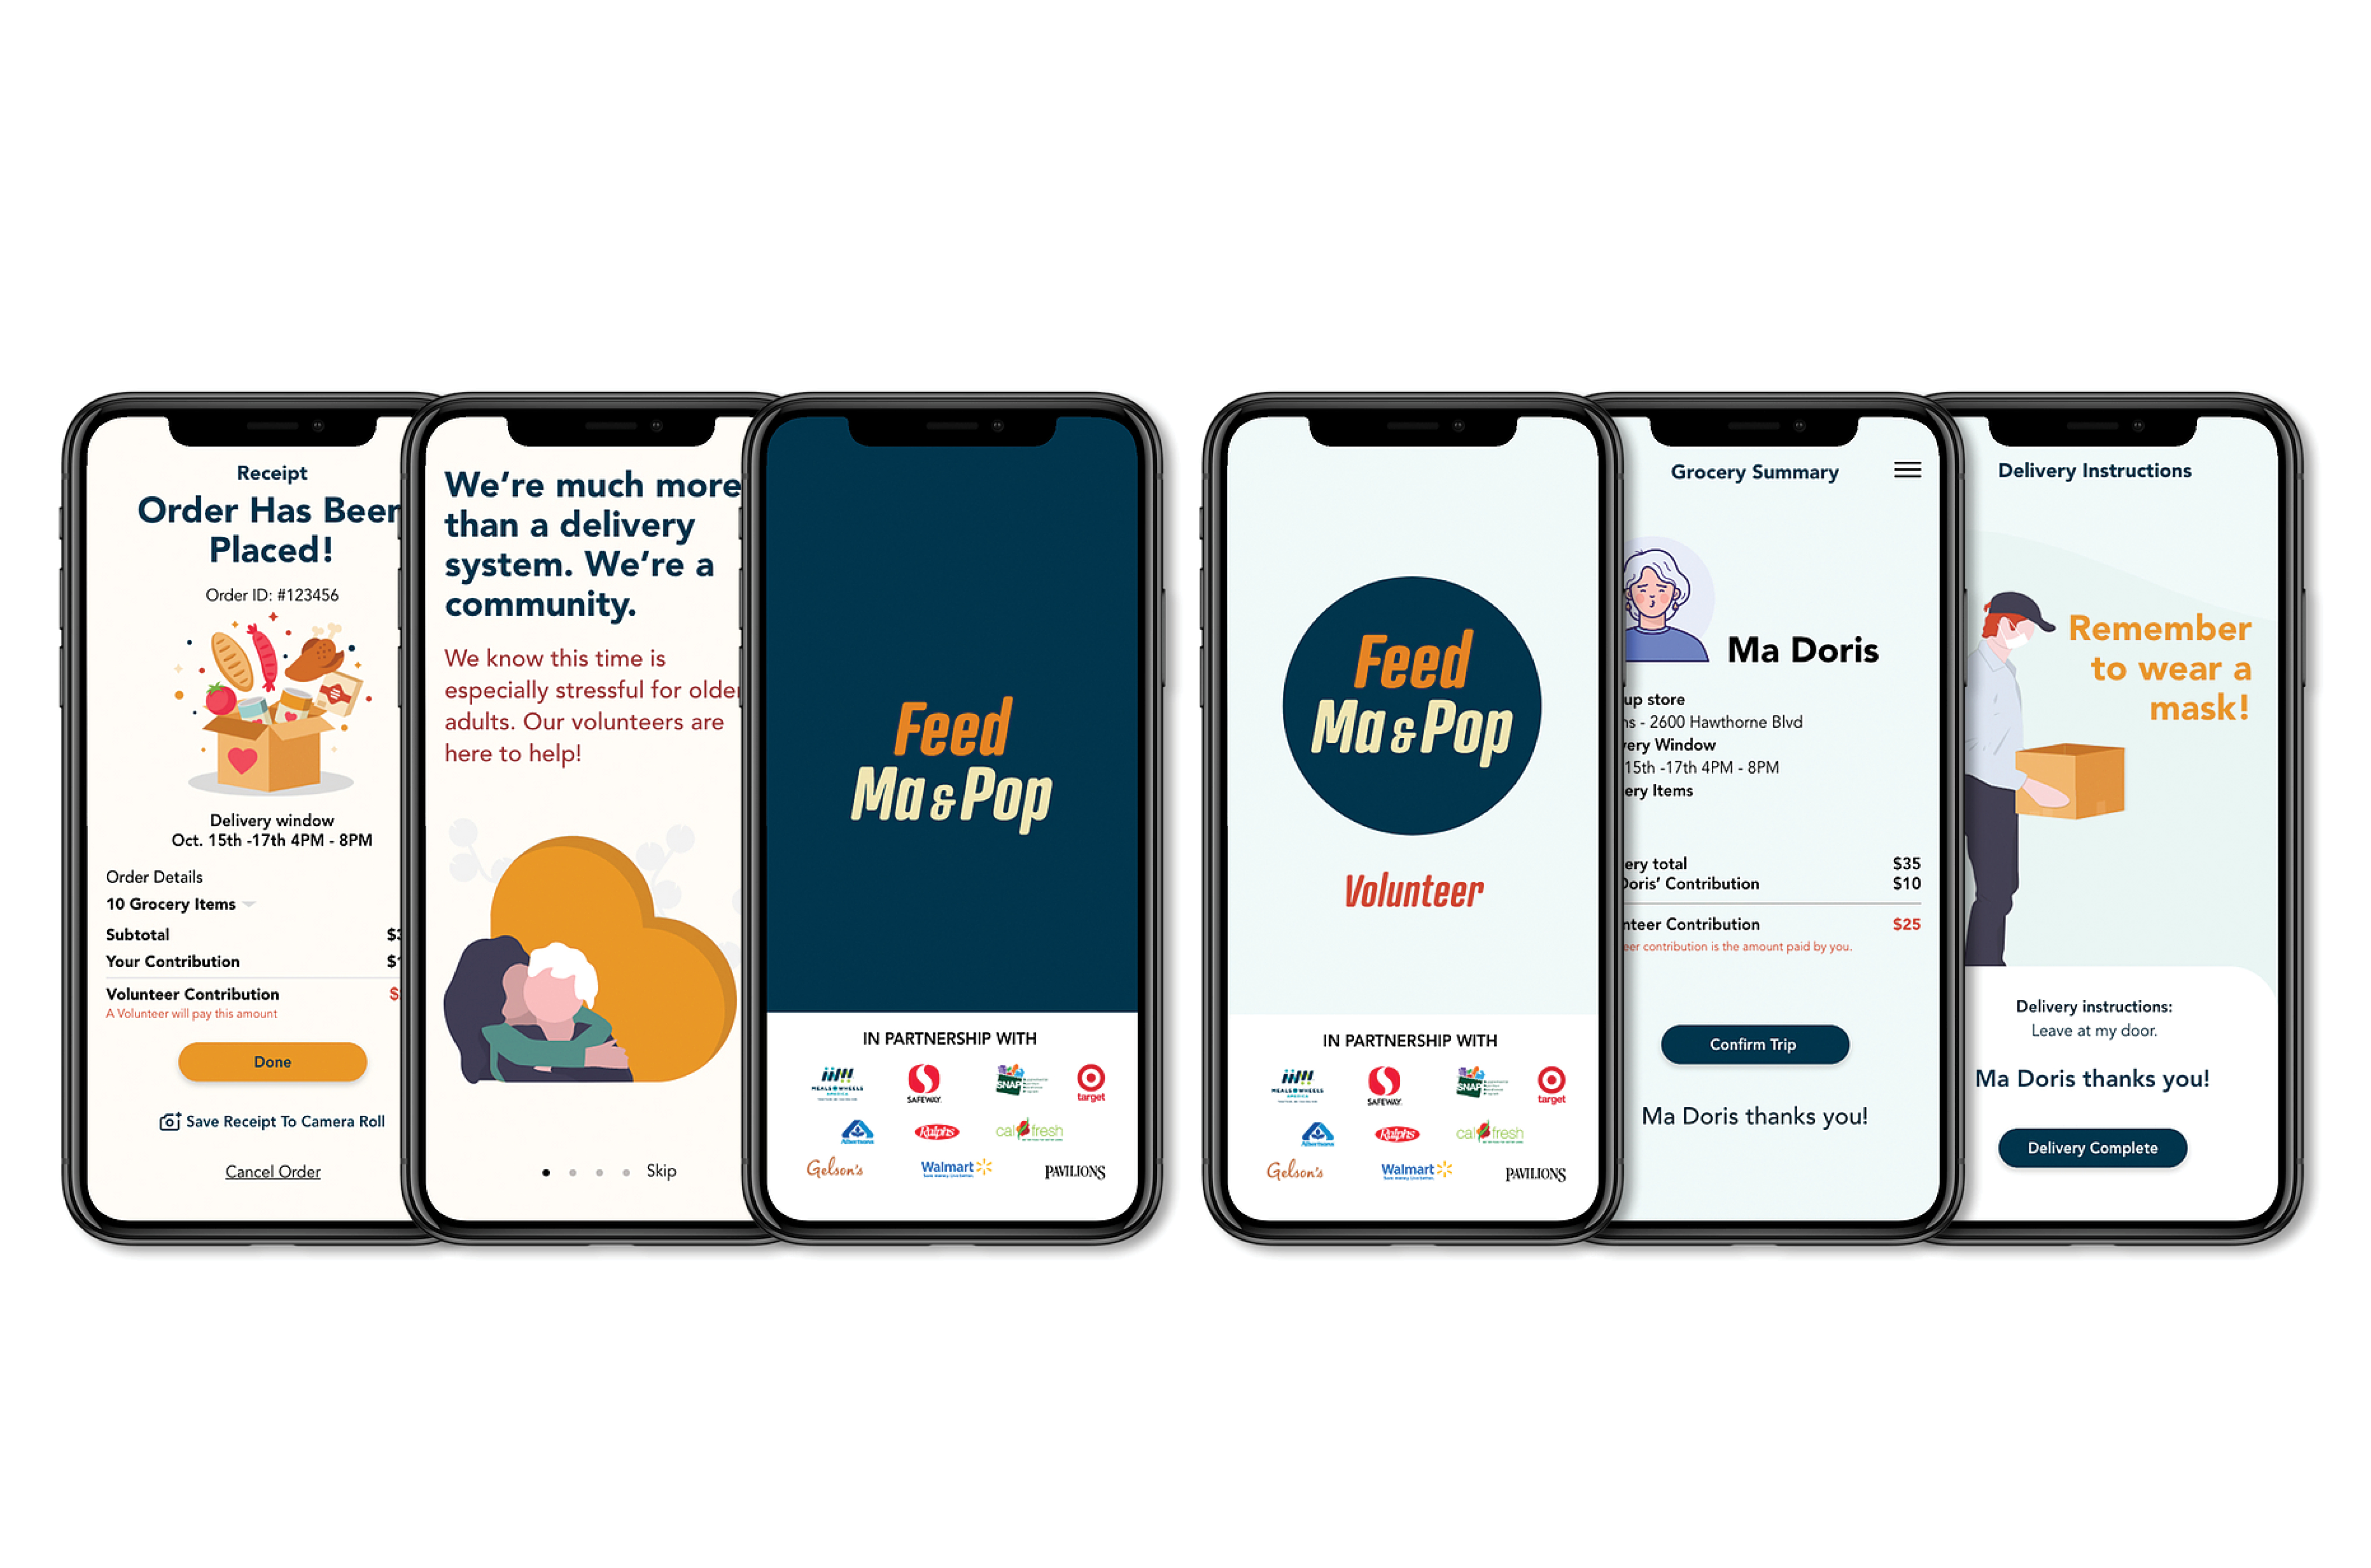 The volunteer side of the app next to the older adult side of the app